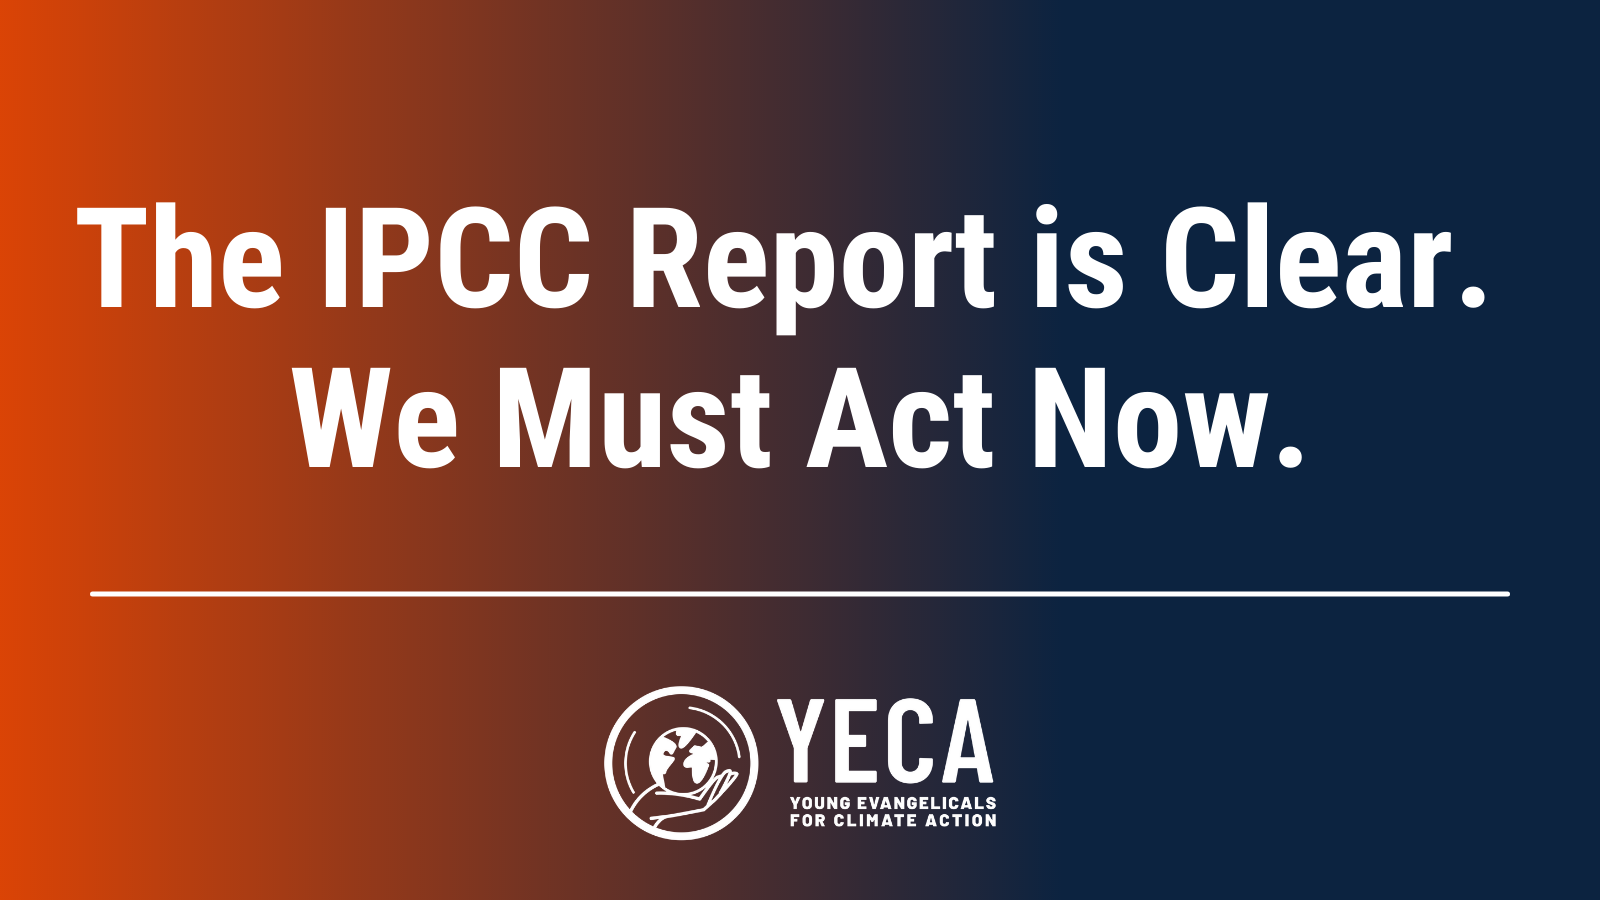 The IPCC Report is Clear. We Must Act Now.